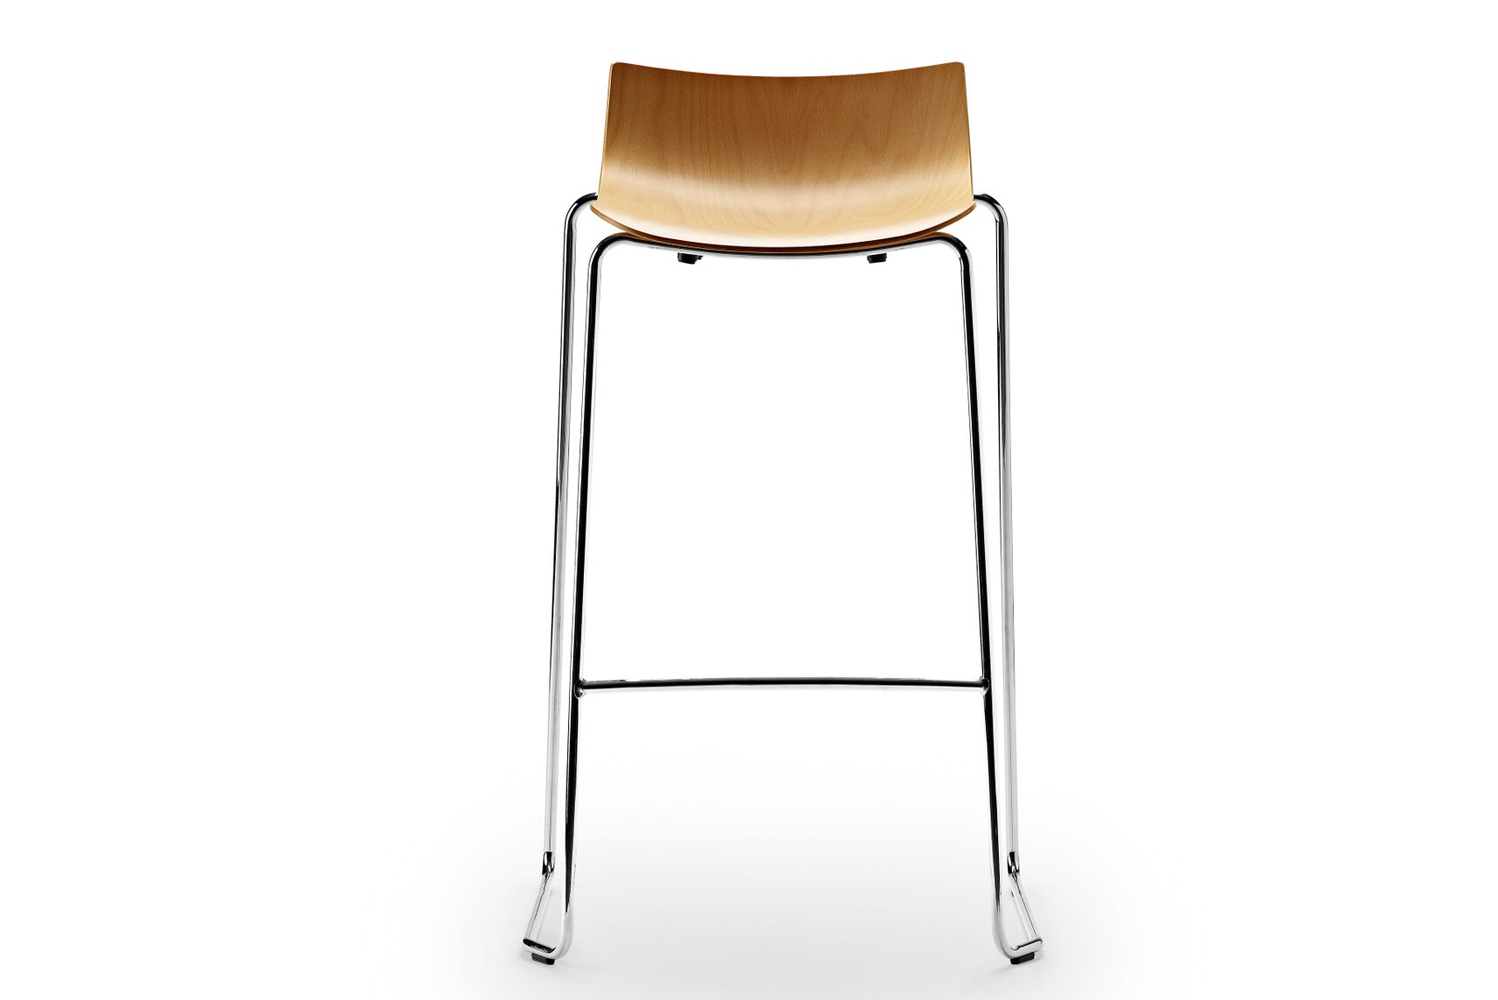 The Preludia series is comprised of a unified range of tables and chairs.